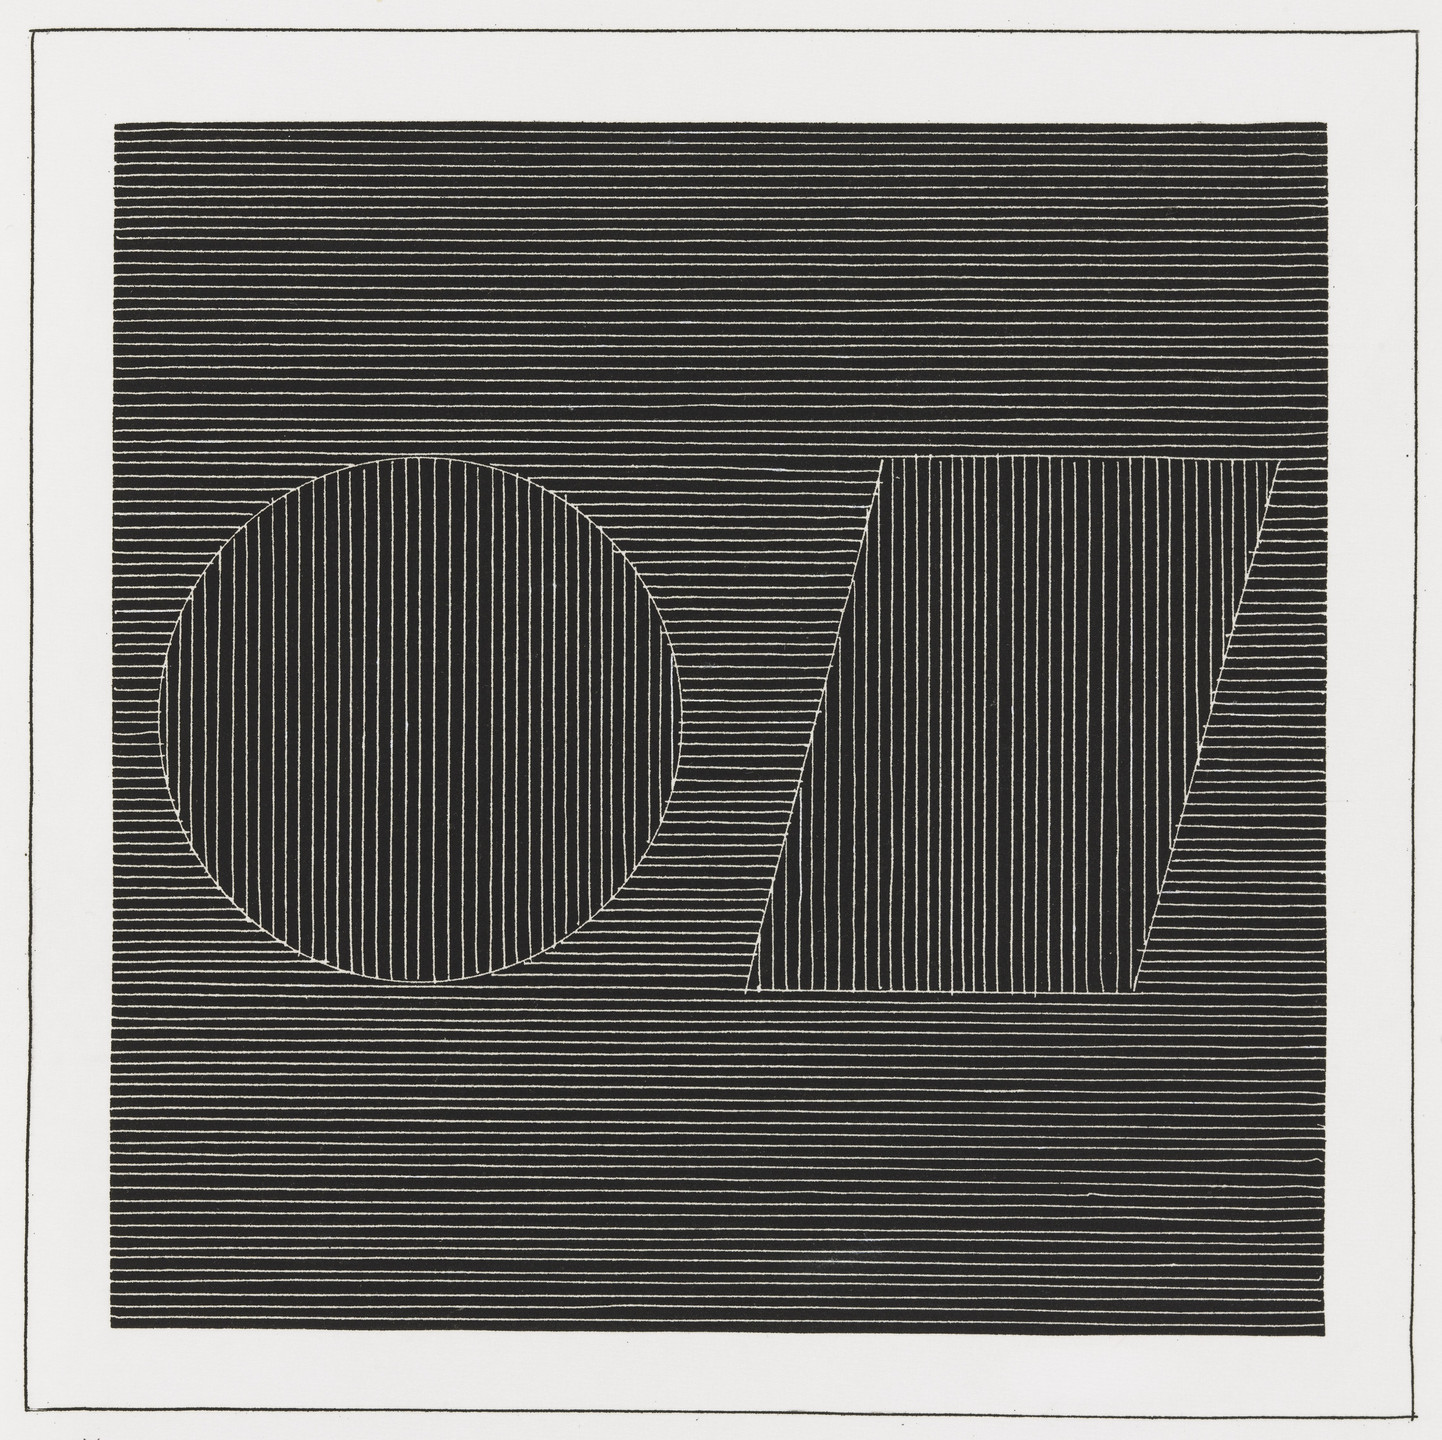 Sol LeWitt. Plate (folio 16) from Six Geometric Figures and All Their Combinations, Volume I. 1980